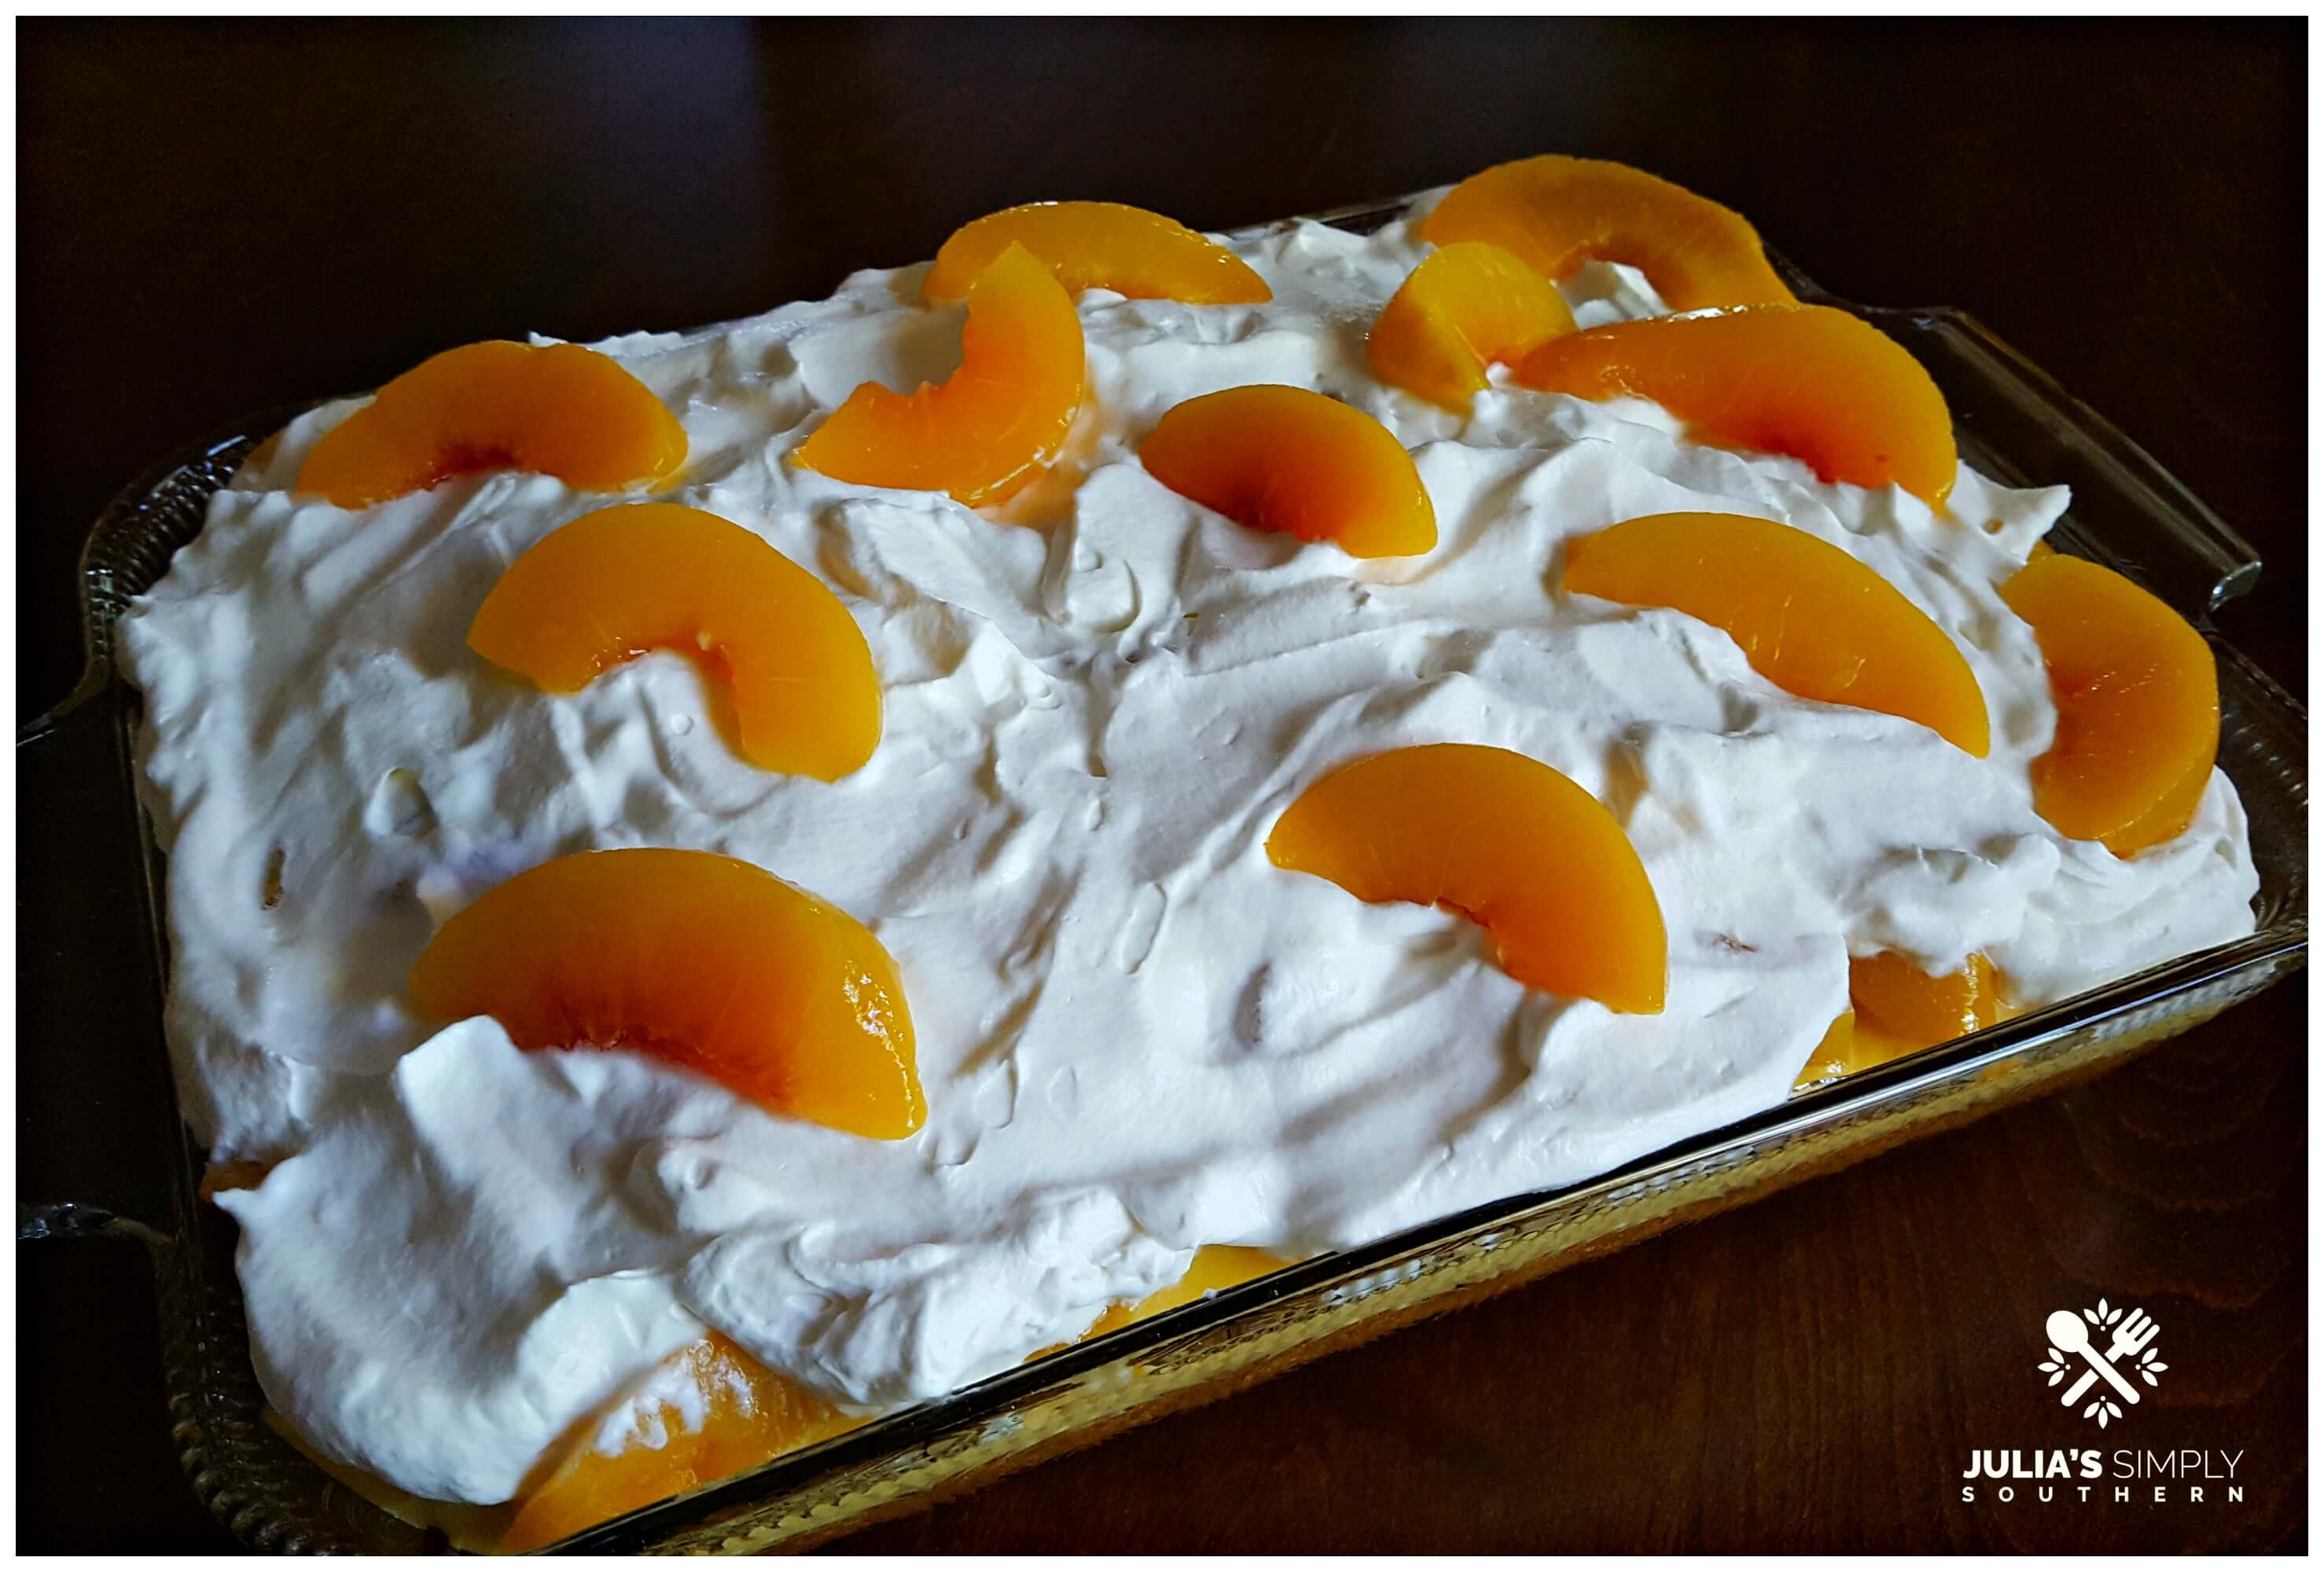 Peaches and Cream Poke Cake Dessert